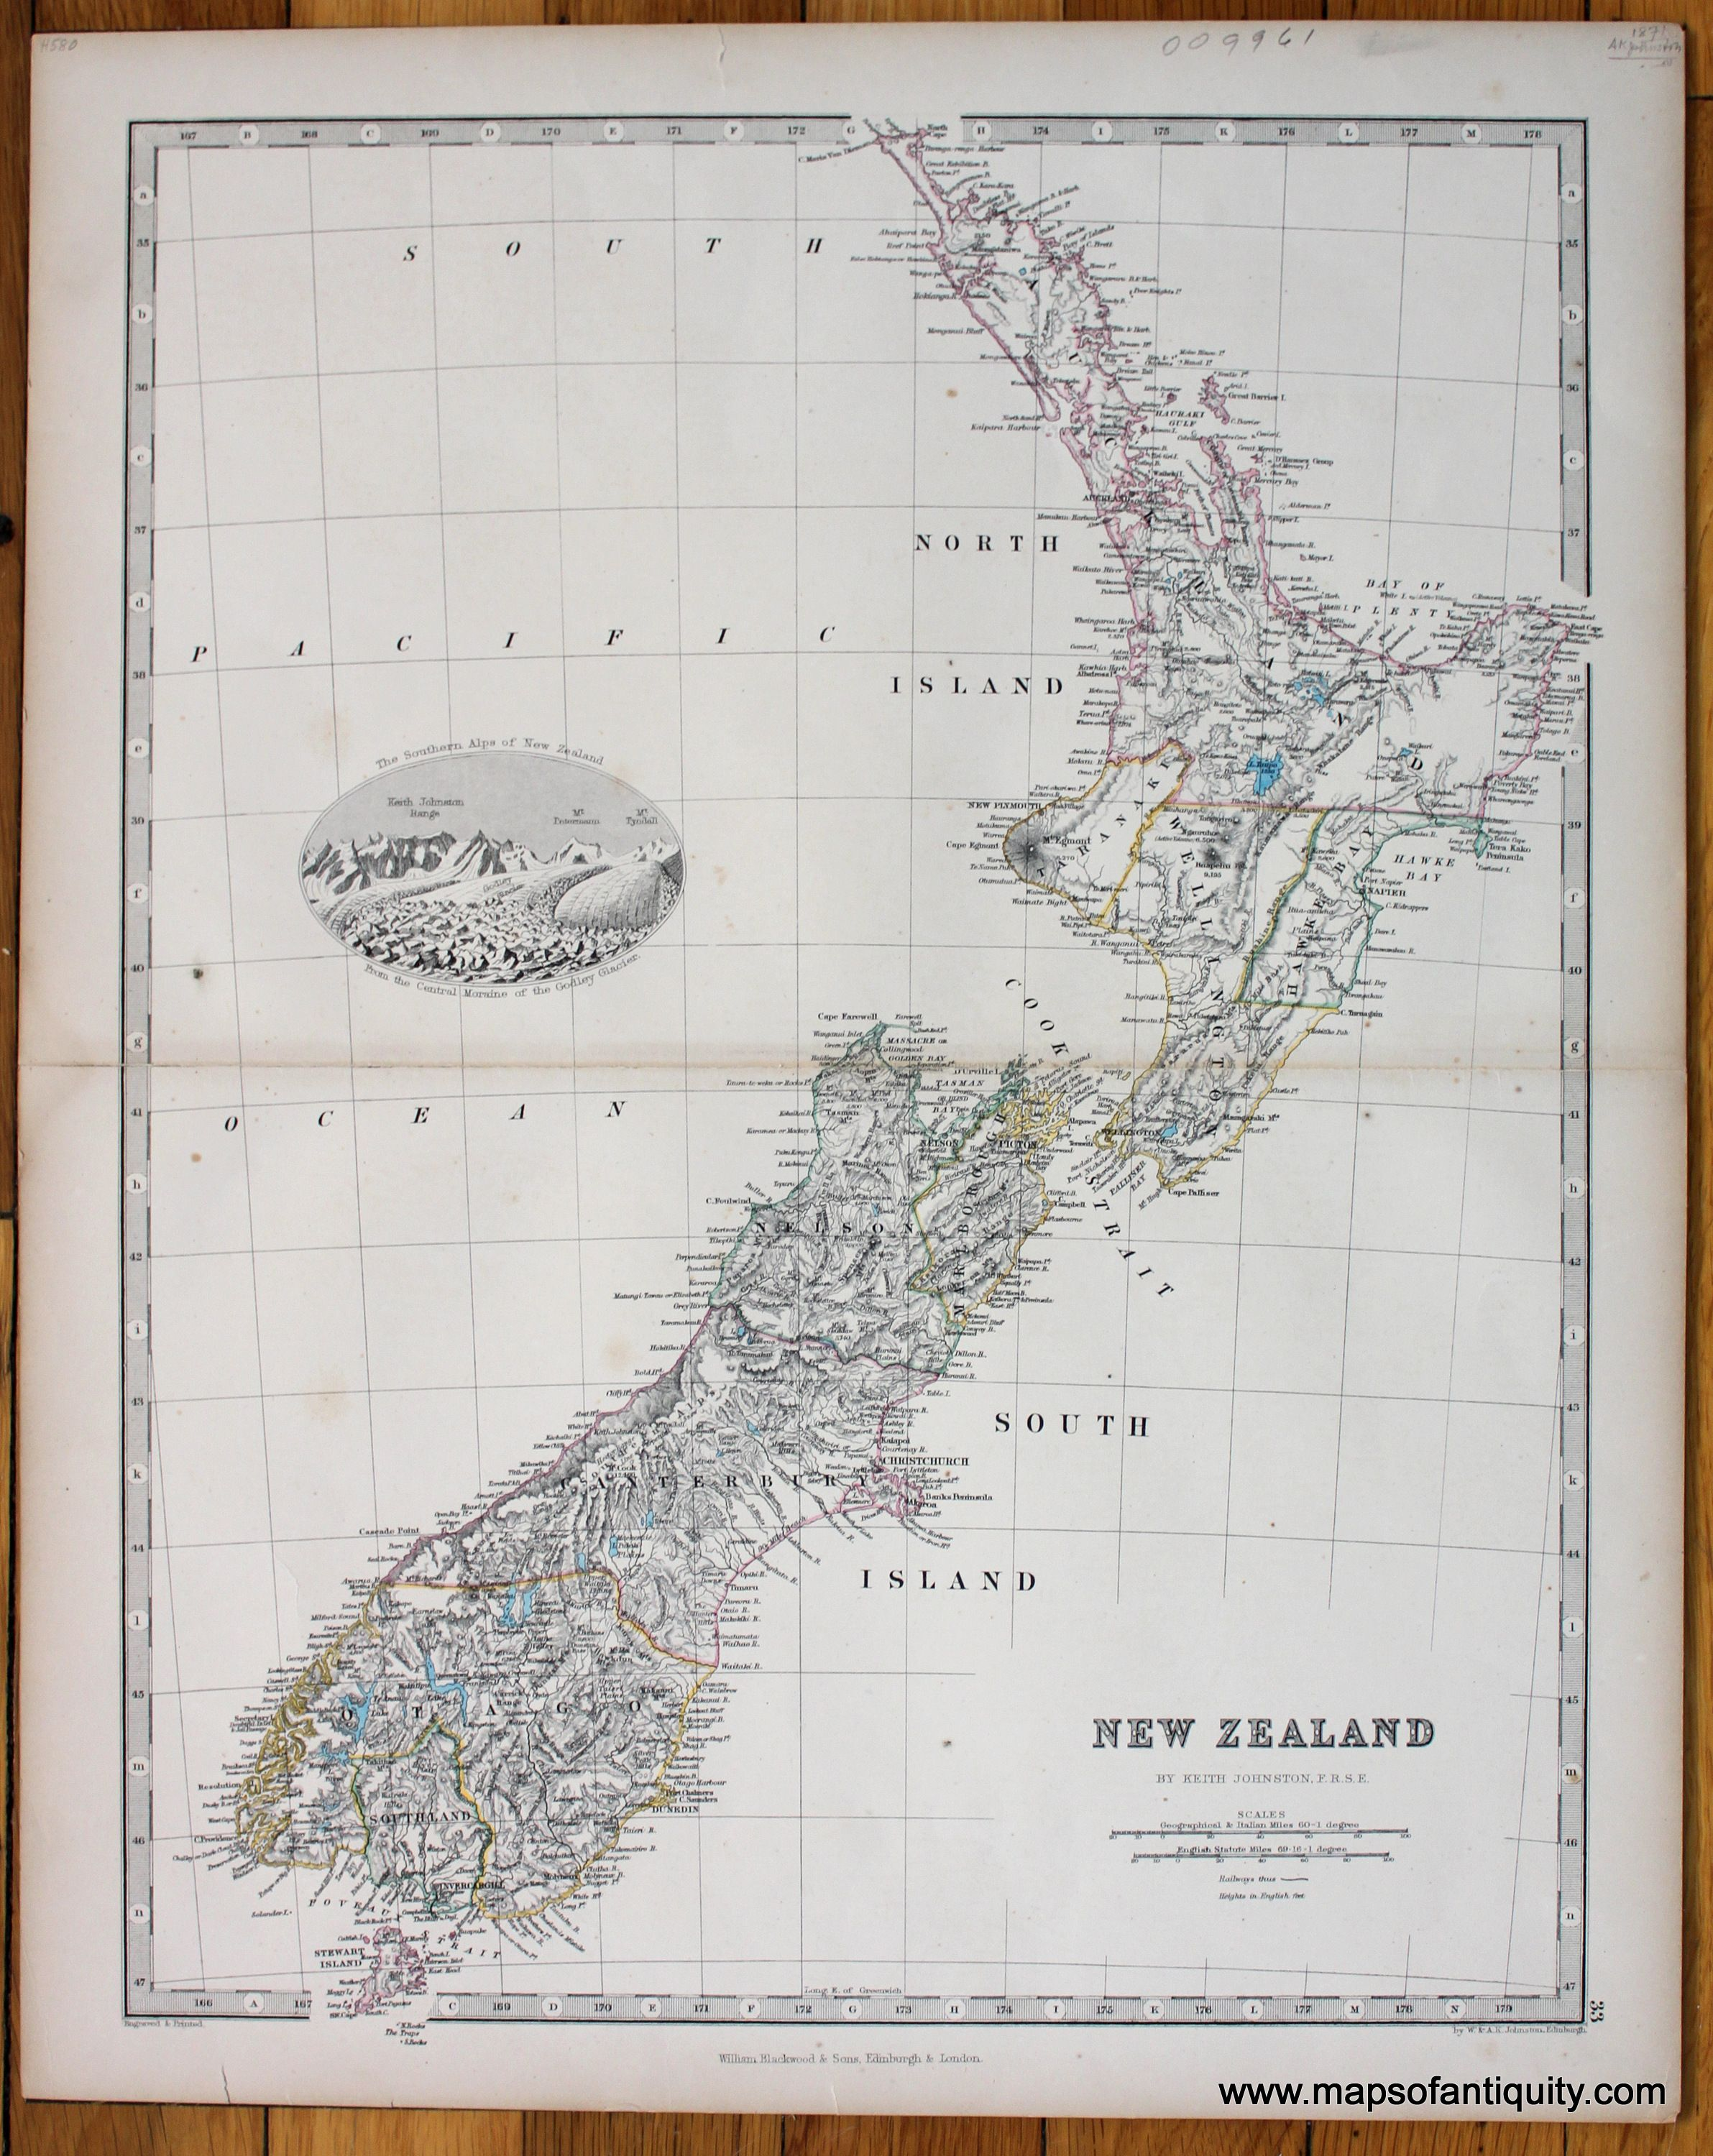 Southern Alps New Zealand Map.Antique C 1871 Hand Colored Map Of New Zealand With A Vignette Of